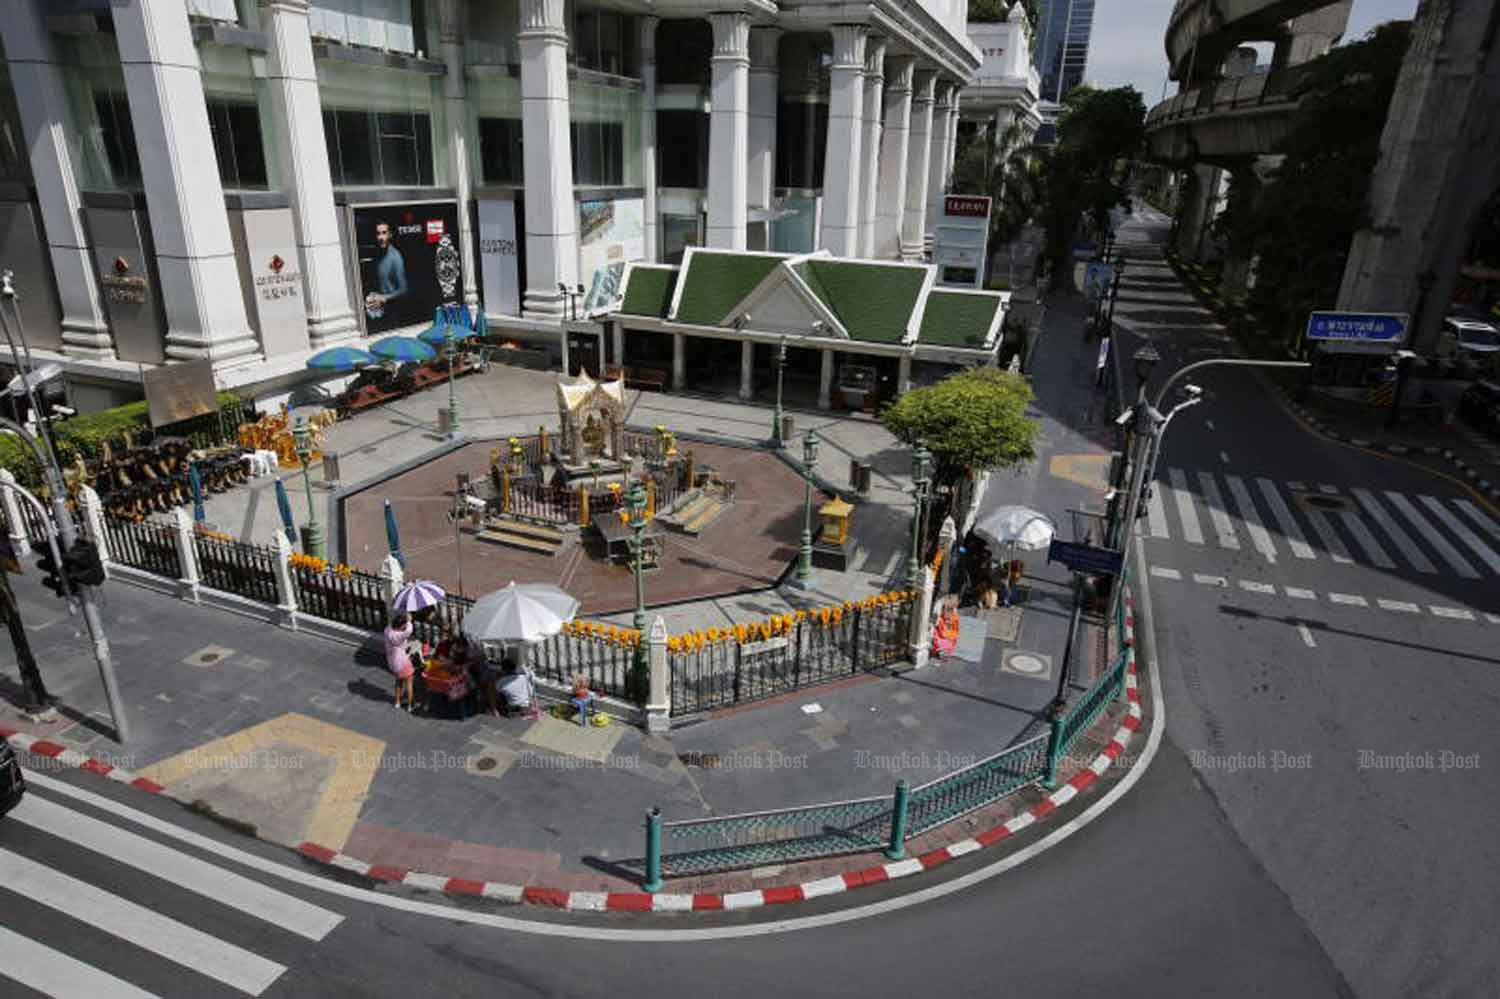 There was little traffic near the famous Erawan Shrine at at Ratchaprasong intersection, a central business area of Bangkok, on Tuesday, when lockdown measures took effect in 13 provinces heavily hit by Covid-19, including Greater Bangkok. (Photo: Wichan Charoenkiatpakul)